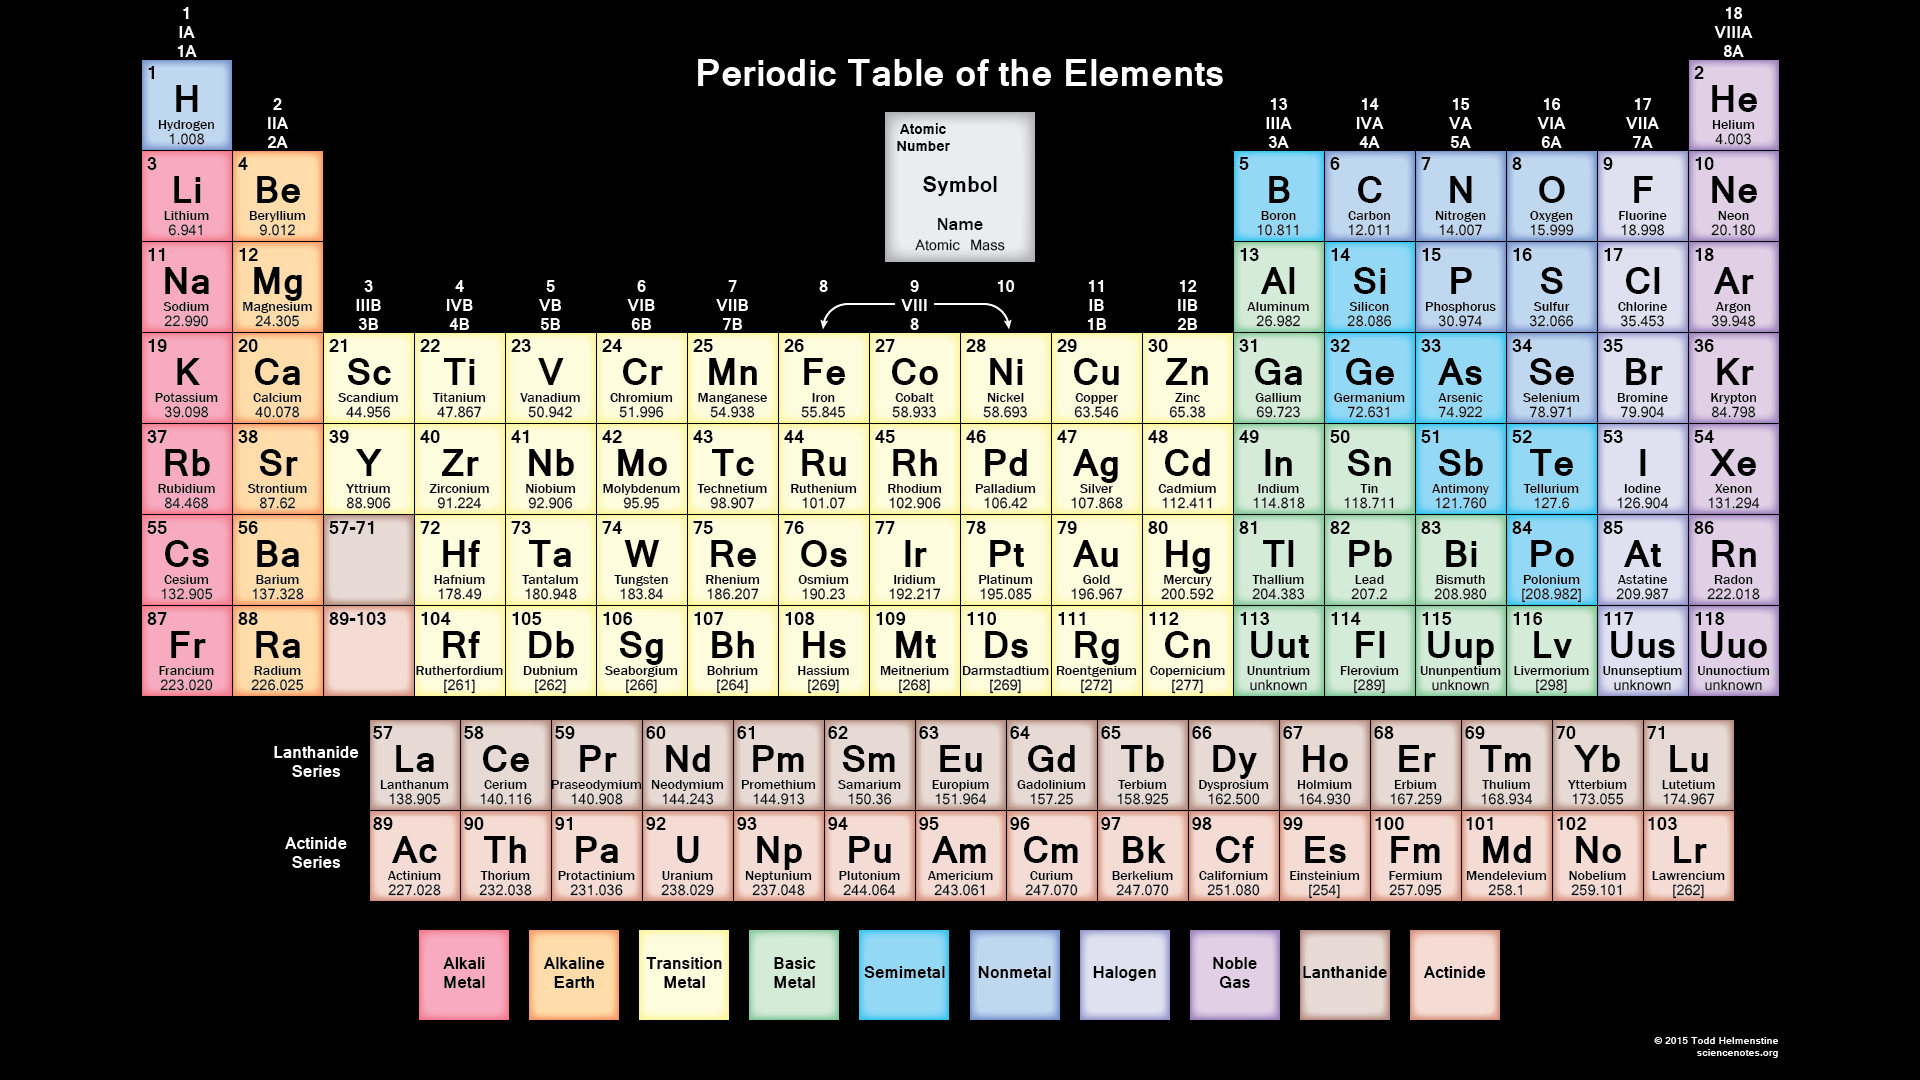 Periodic tables of the elements in american englishmichael canov amer18g urtaz Gallery